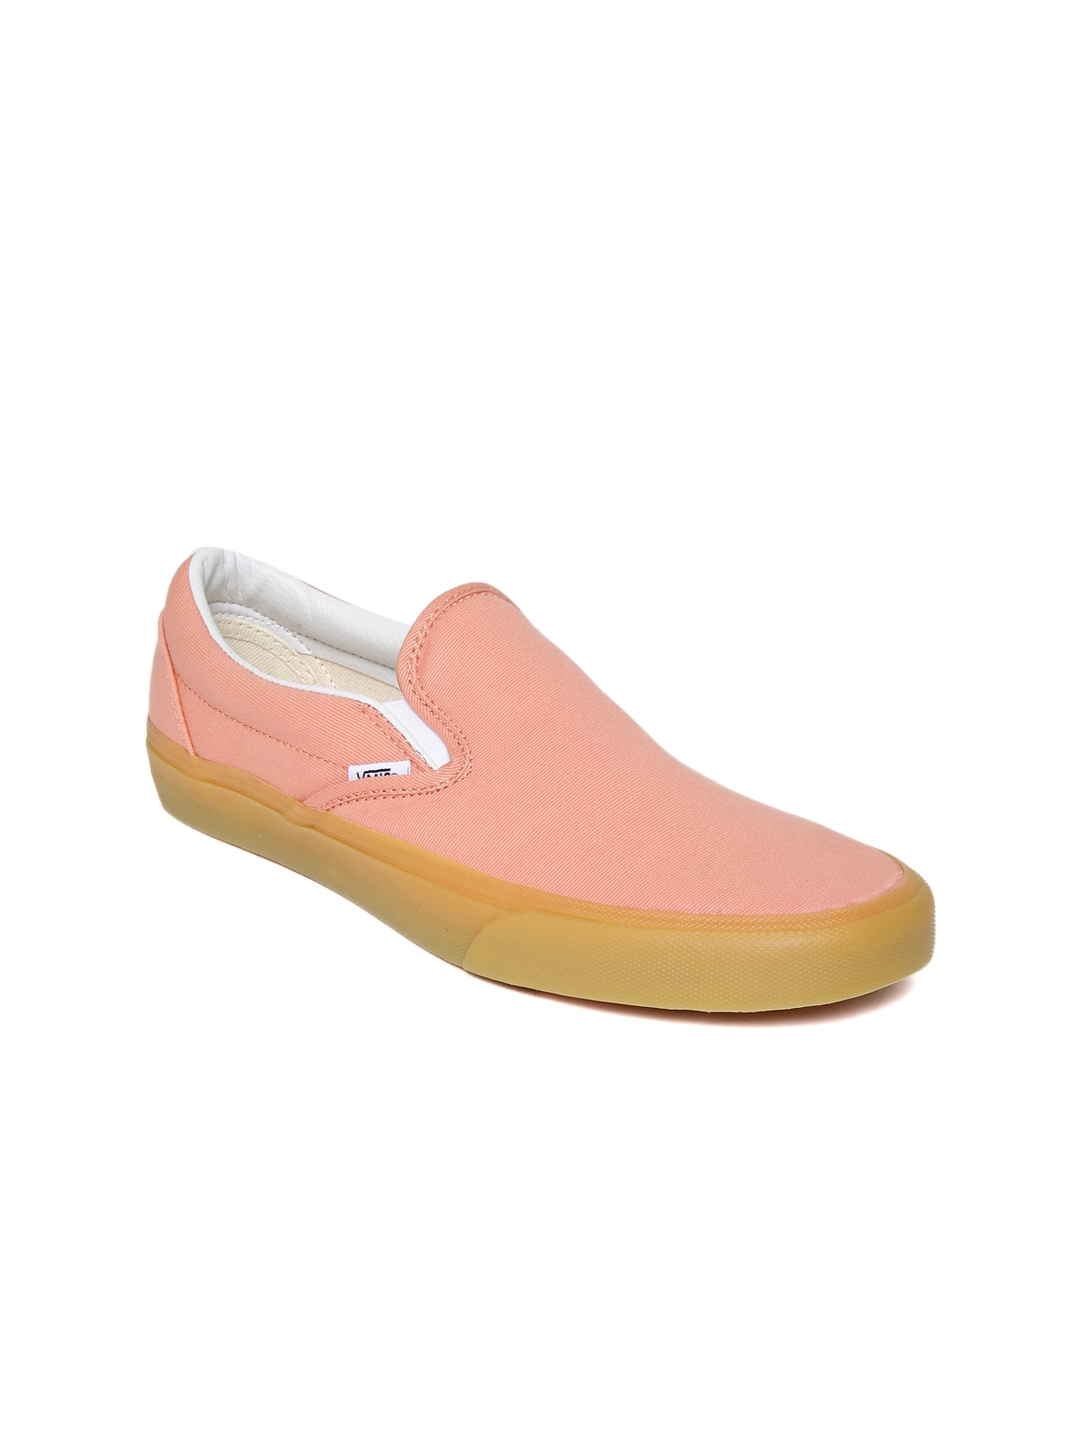 09704b460d Buy Vans Unisex Peach Coloured Classic Slip On Sneakers - Casual ...